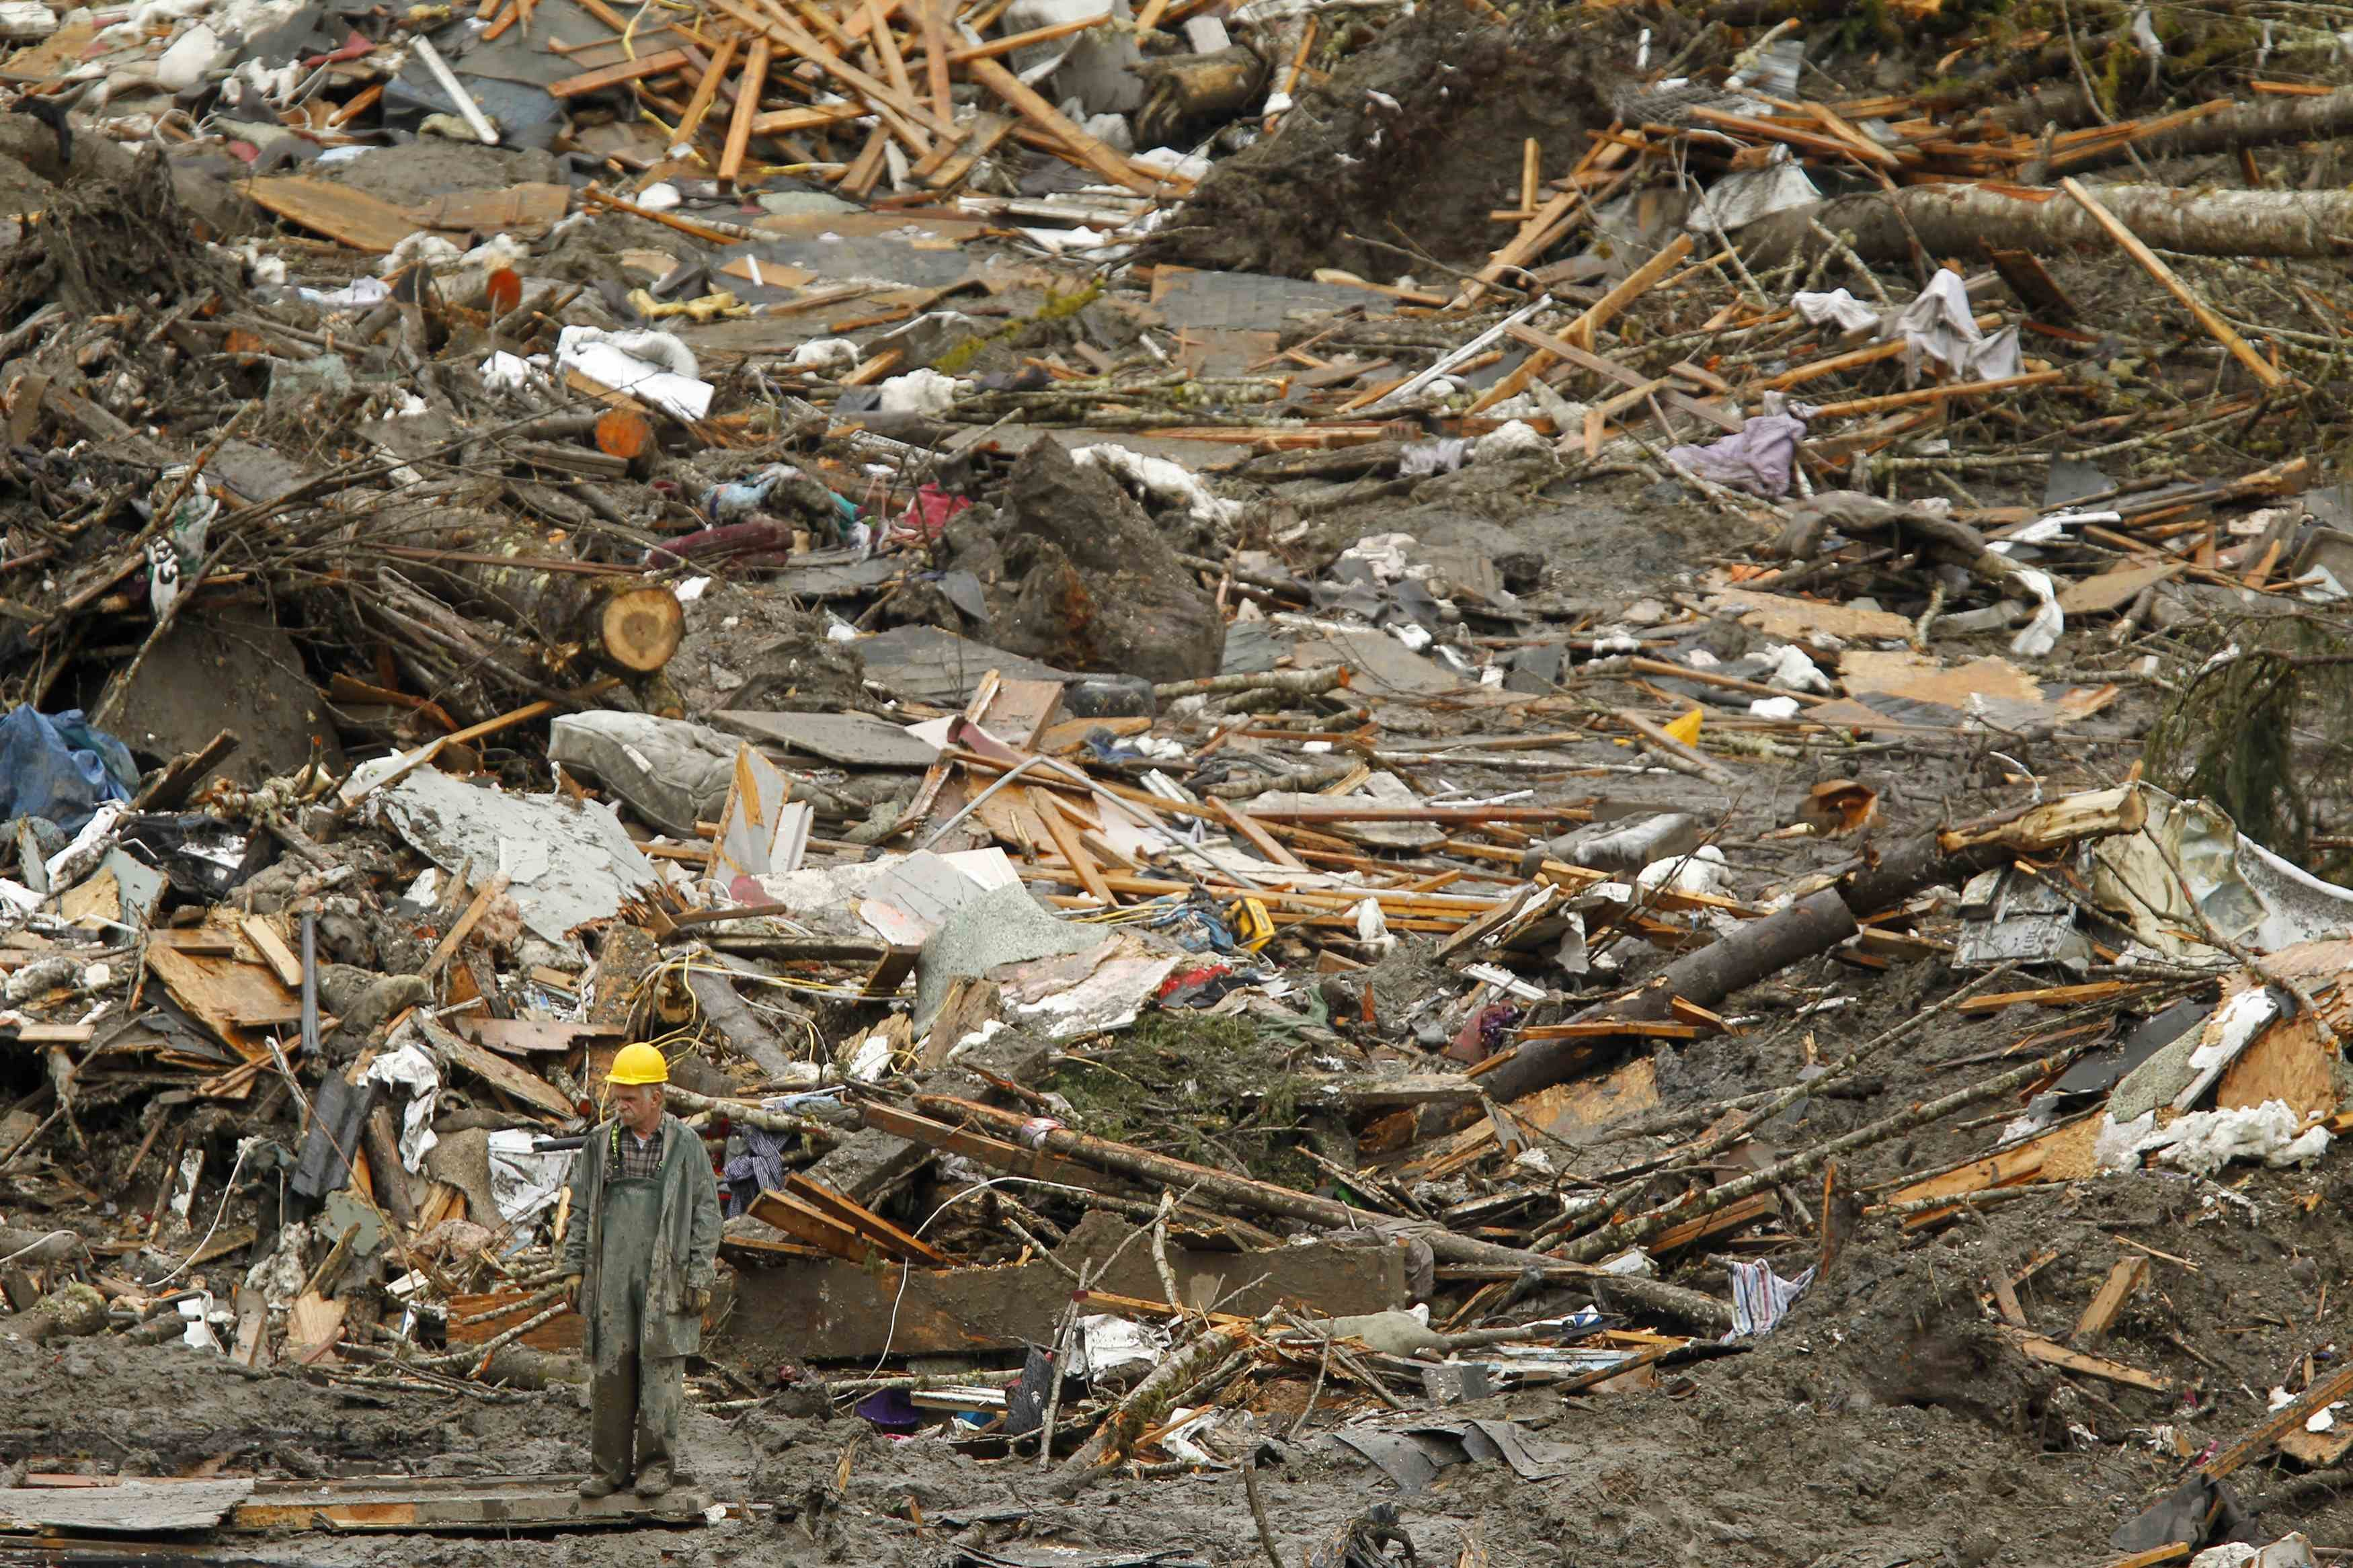 A rescue worker looks over the debris pile from the mudslide in Oso, Wash., March 27, 2014.